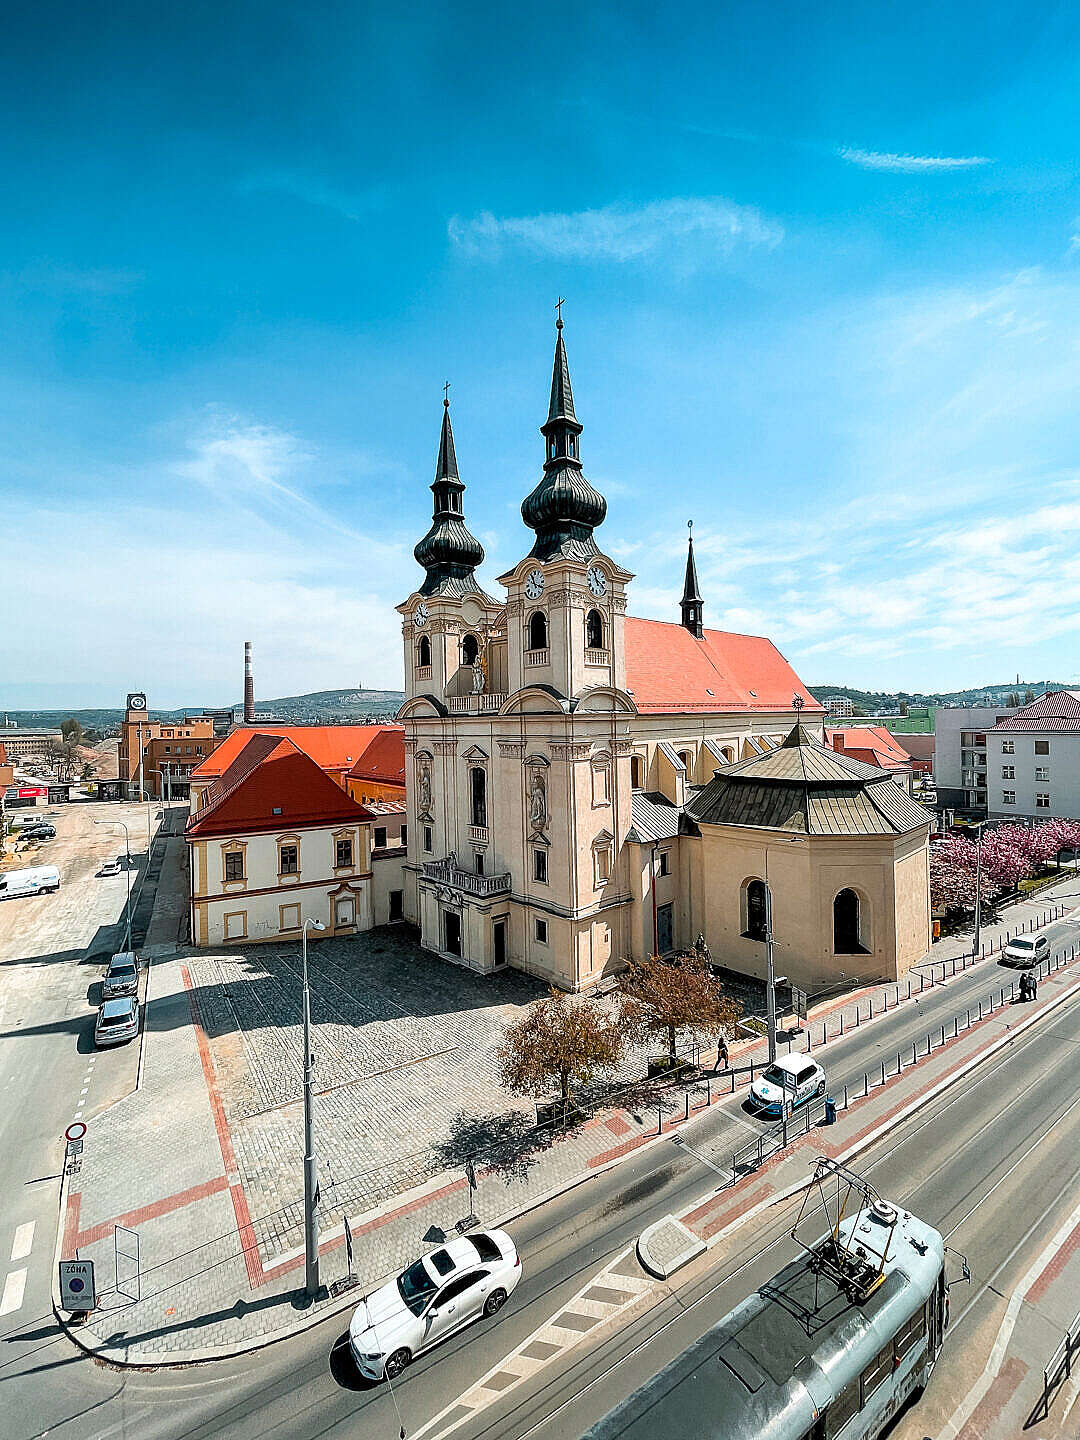 Download Church of the Assumption of the Virgin Mary in Brno FREE Stock Photo